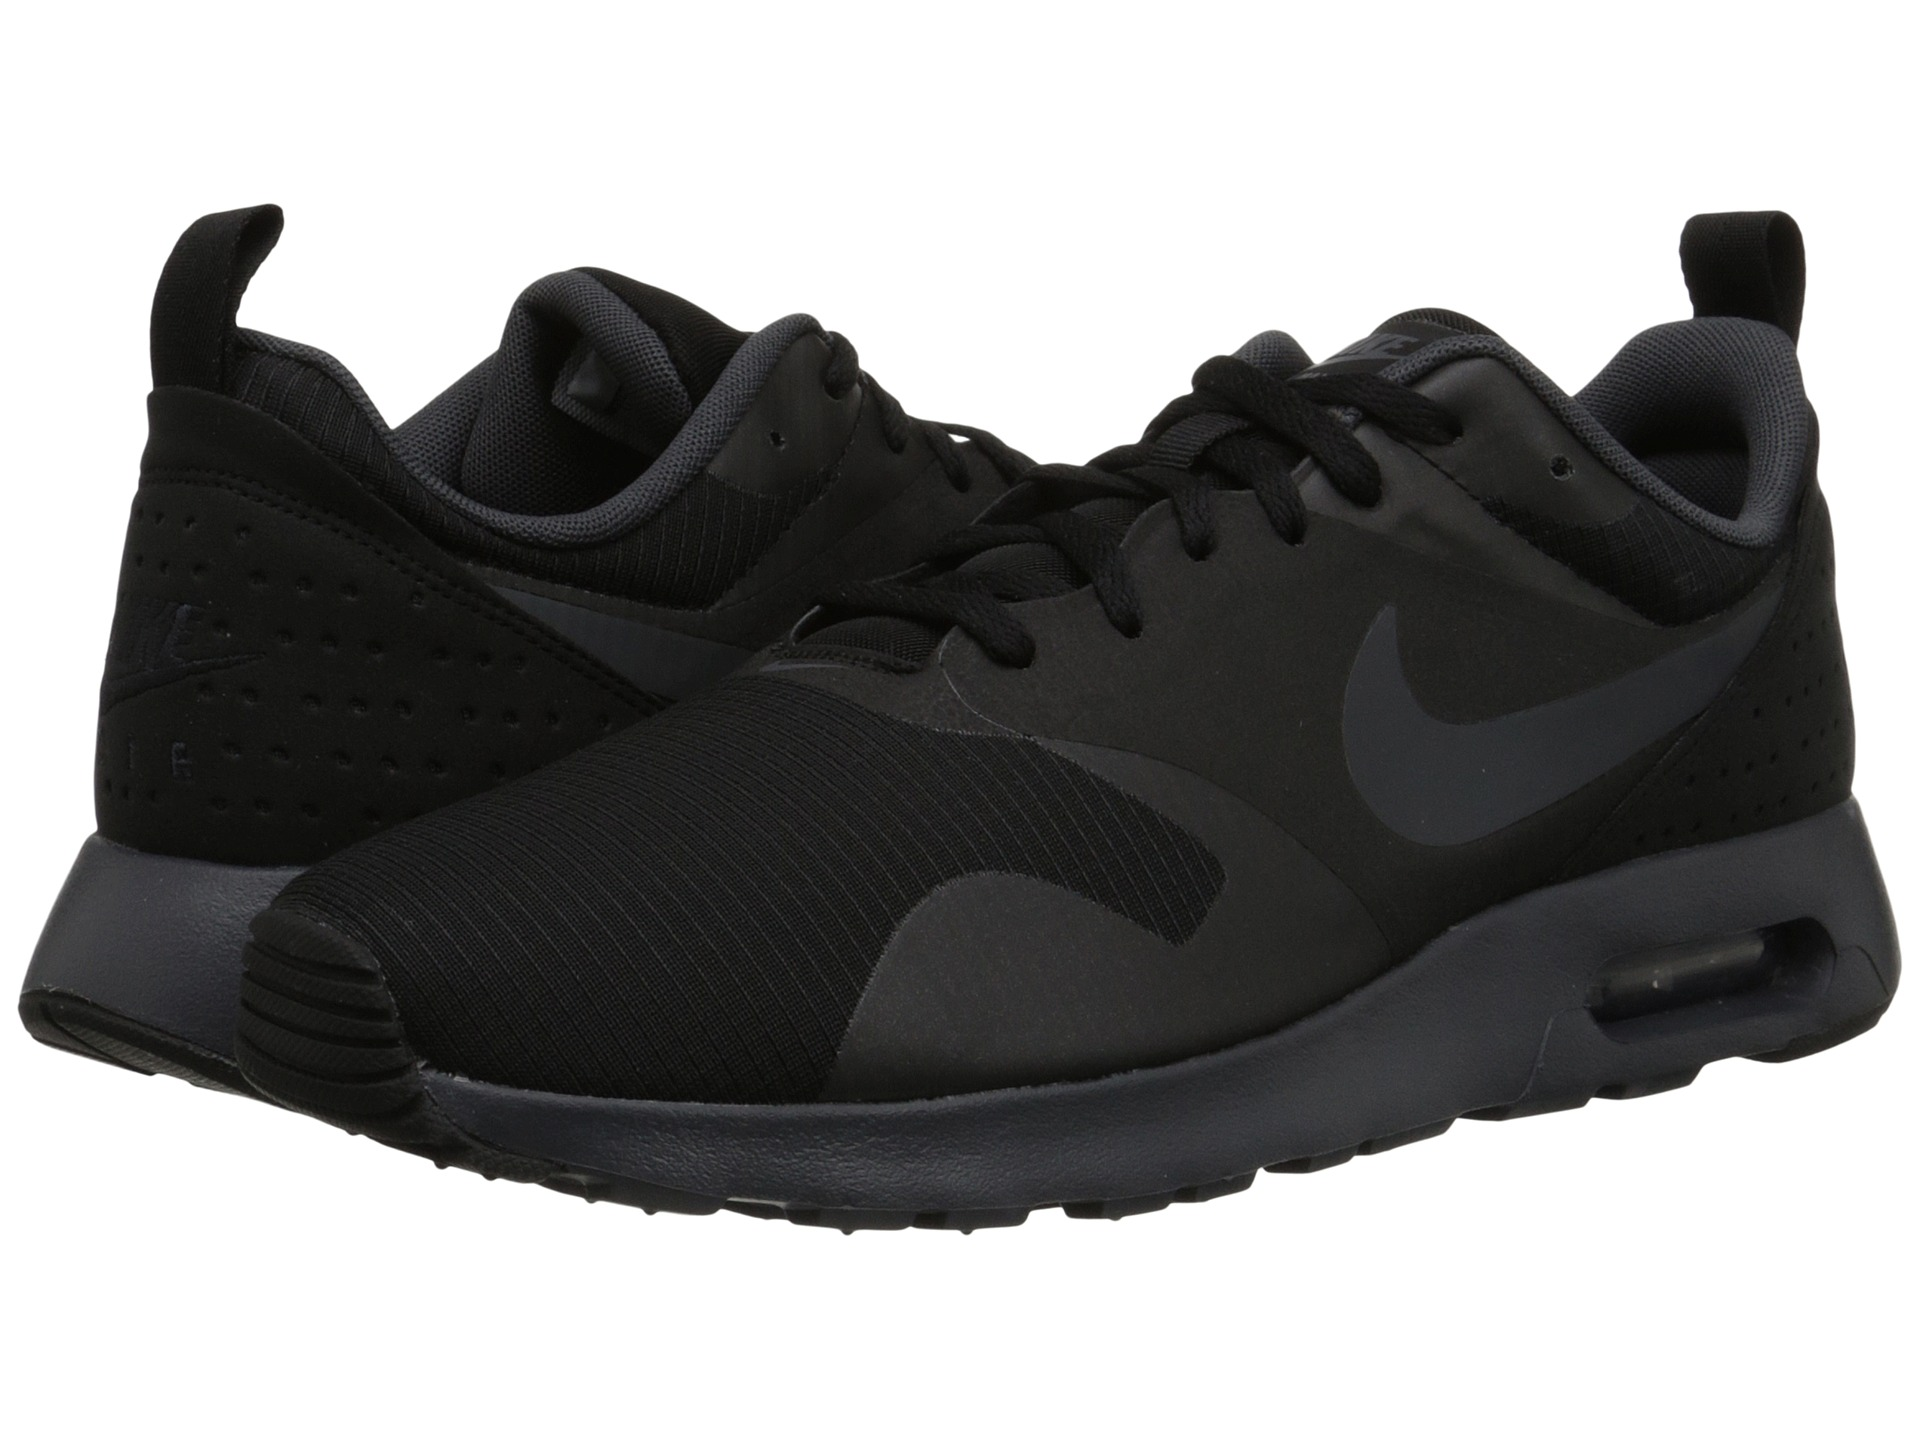 Nike Air Max Tavas Ltr Review baldersnas.nu